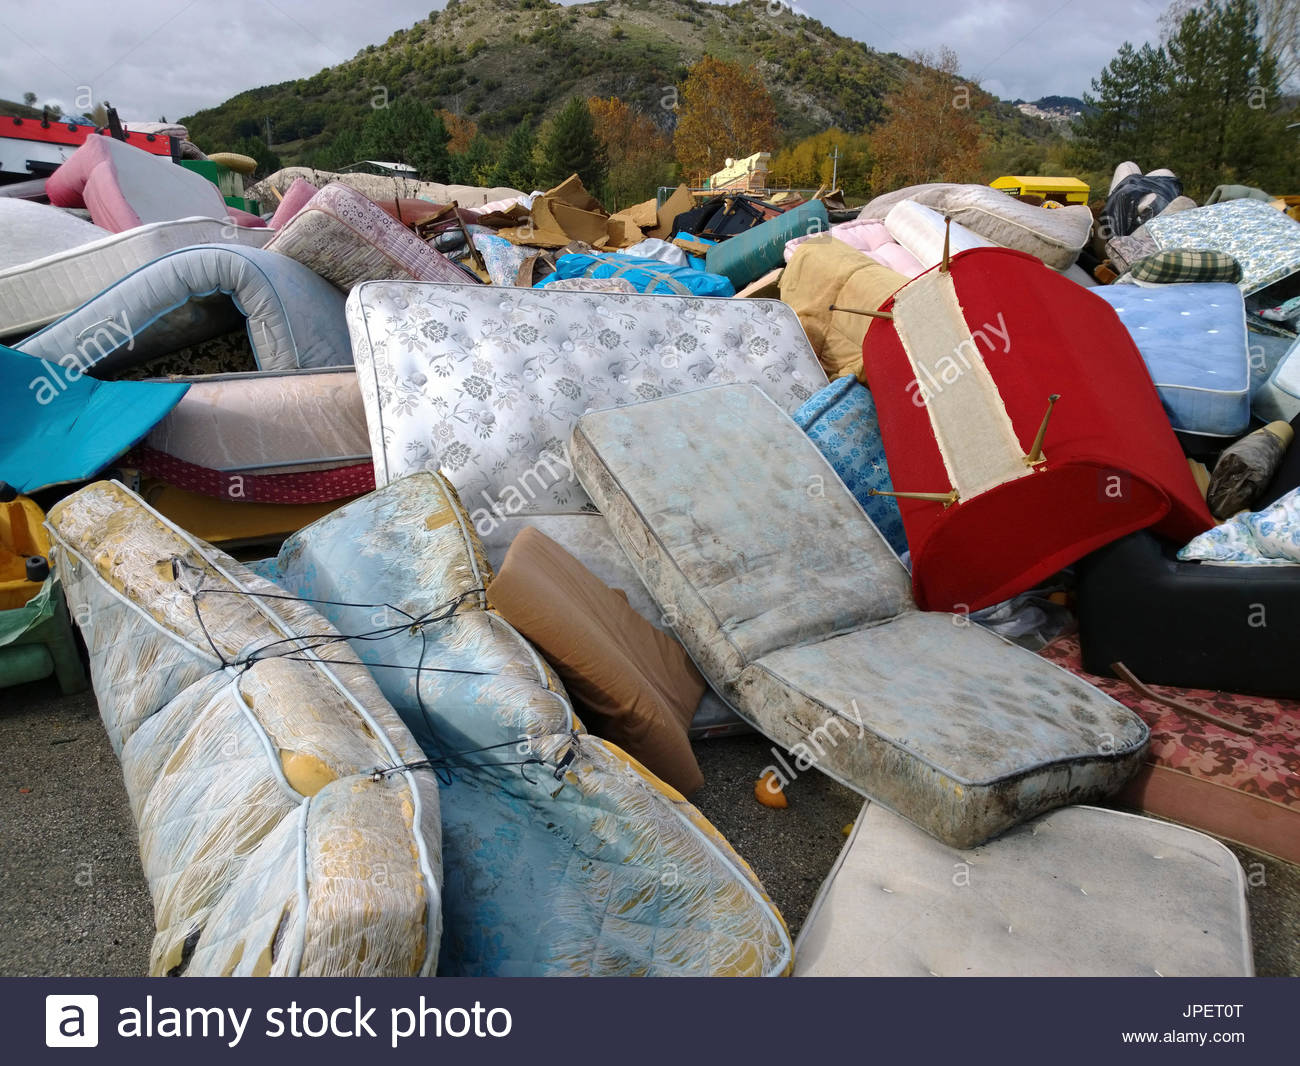 old mattress and couch piled up in an authorized recycling station - Stock Image